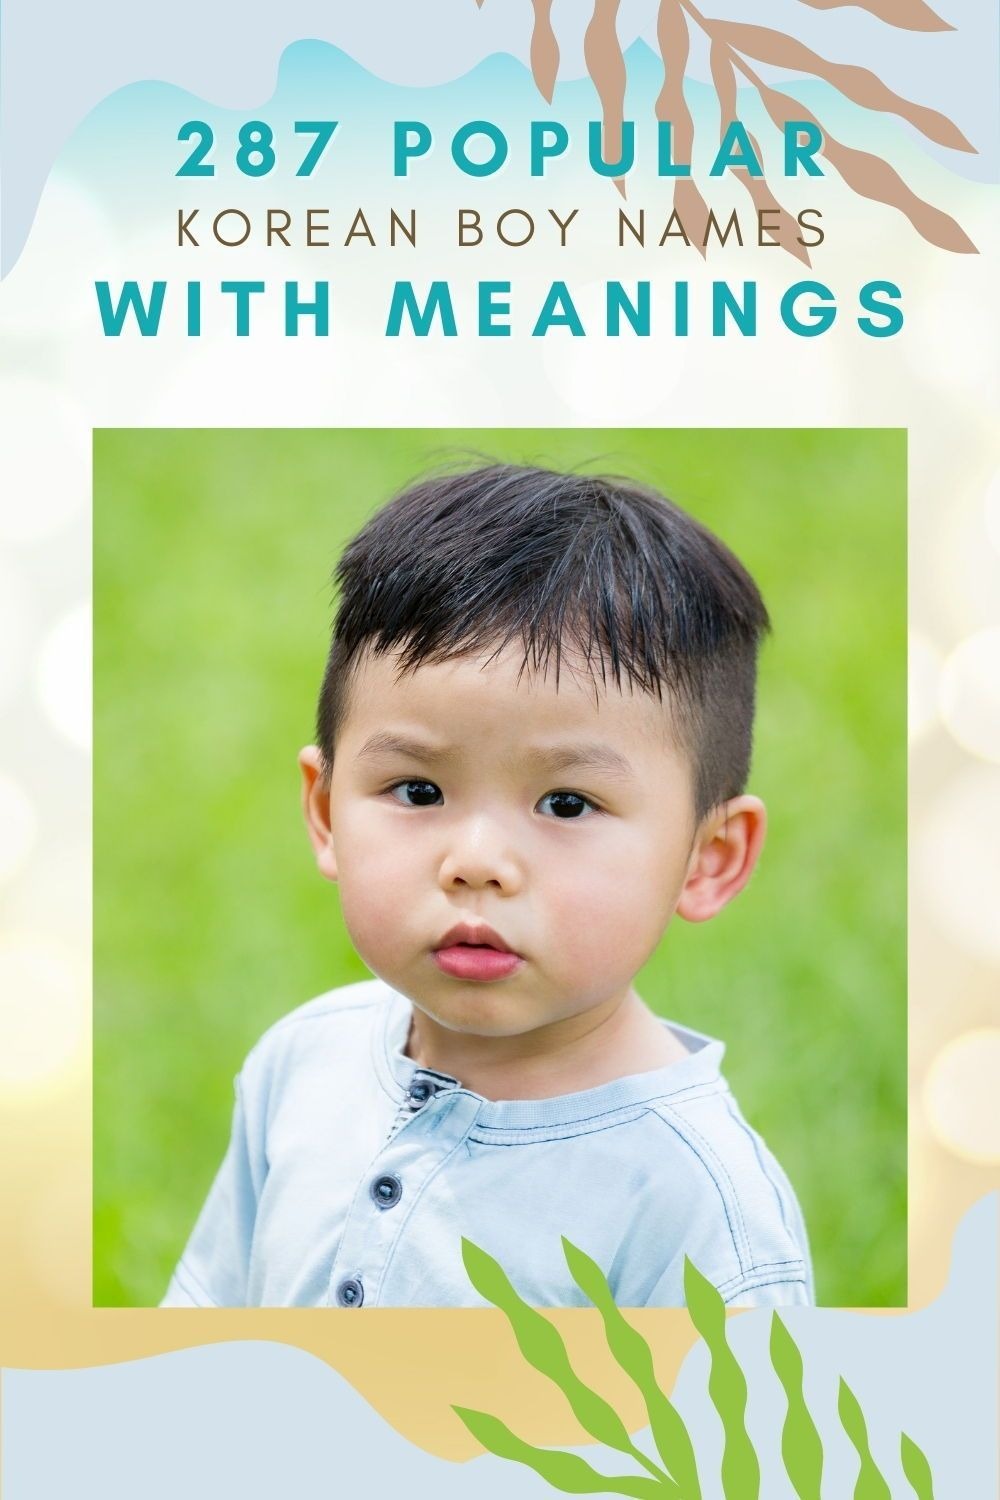 287 Popular Korean Boy Names With Meanings In 2021 Korean Boy Names Korean Baby Names Cute Boy Names